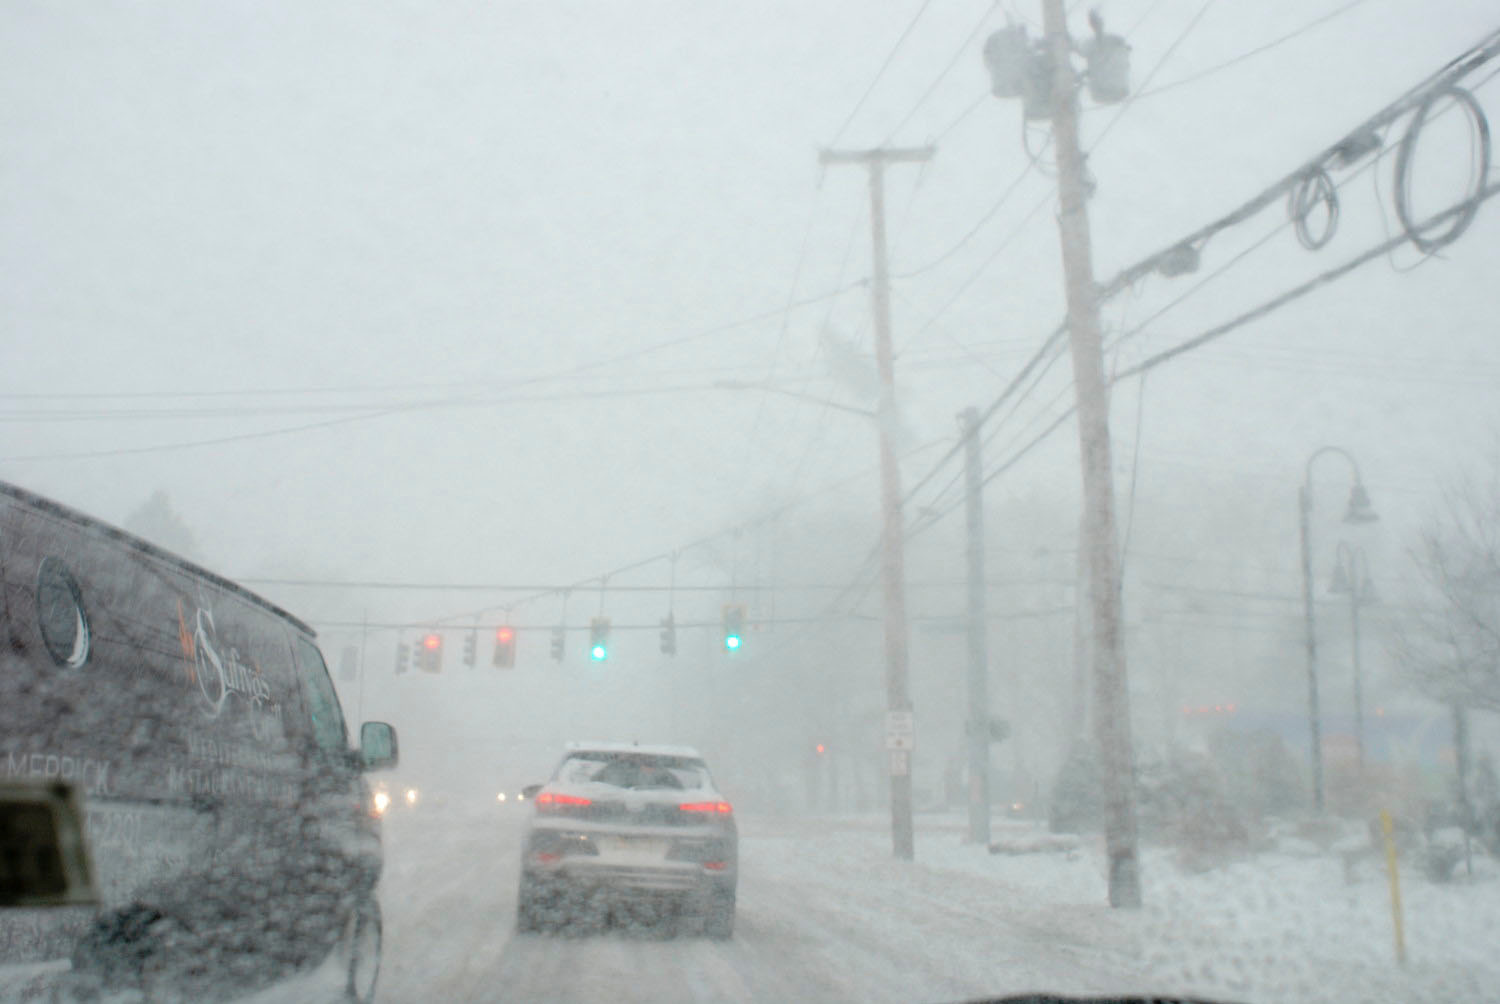 Traffic was slow-moving during the blizzard on Jan. 4 at the corner of Merrick Avenue and Hempstead Turnpike in East Meadow.